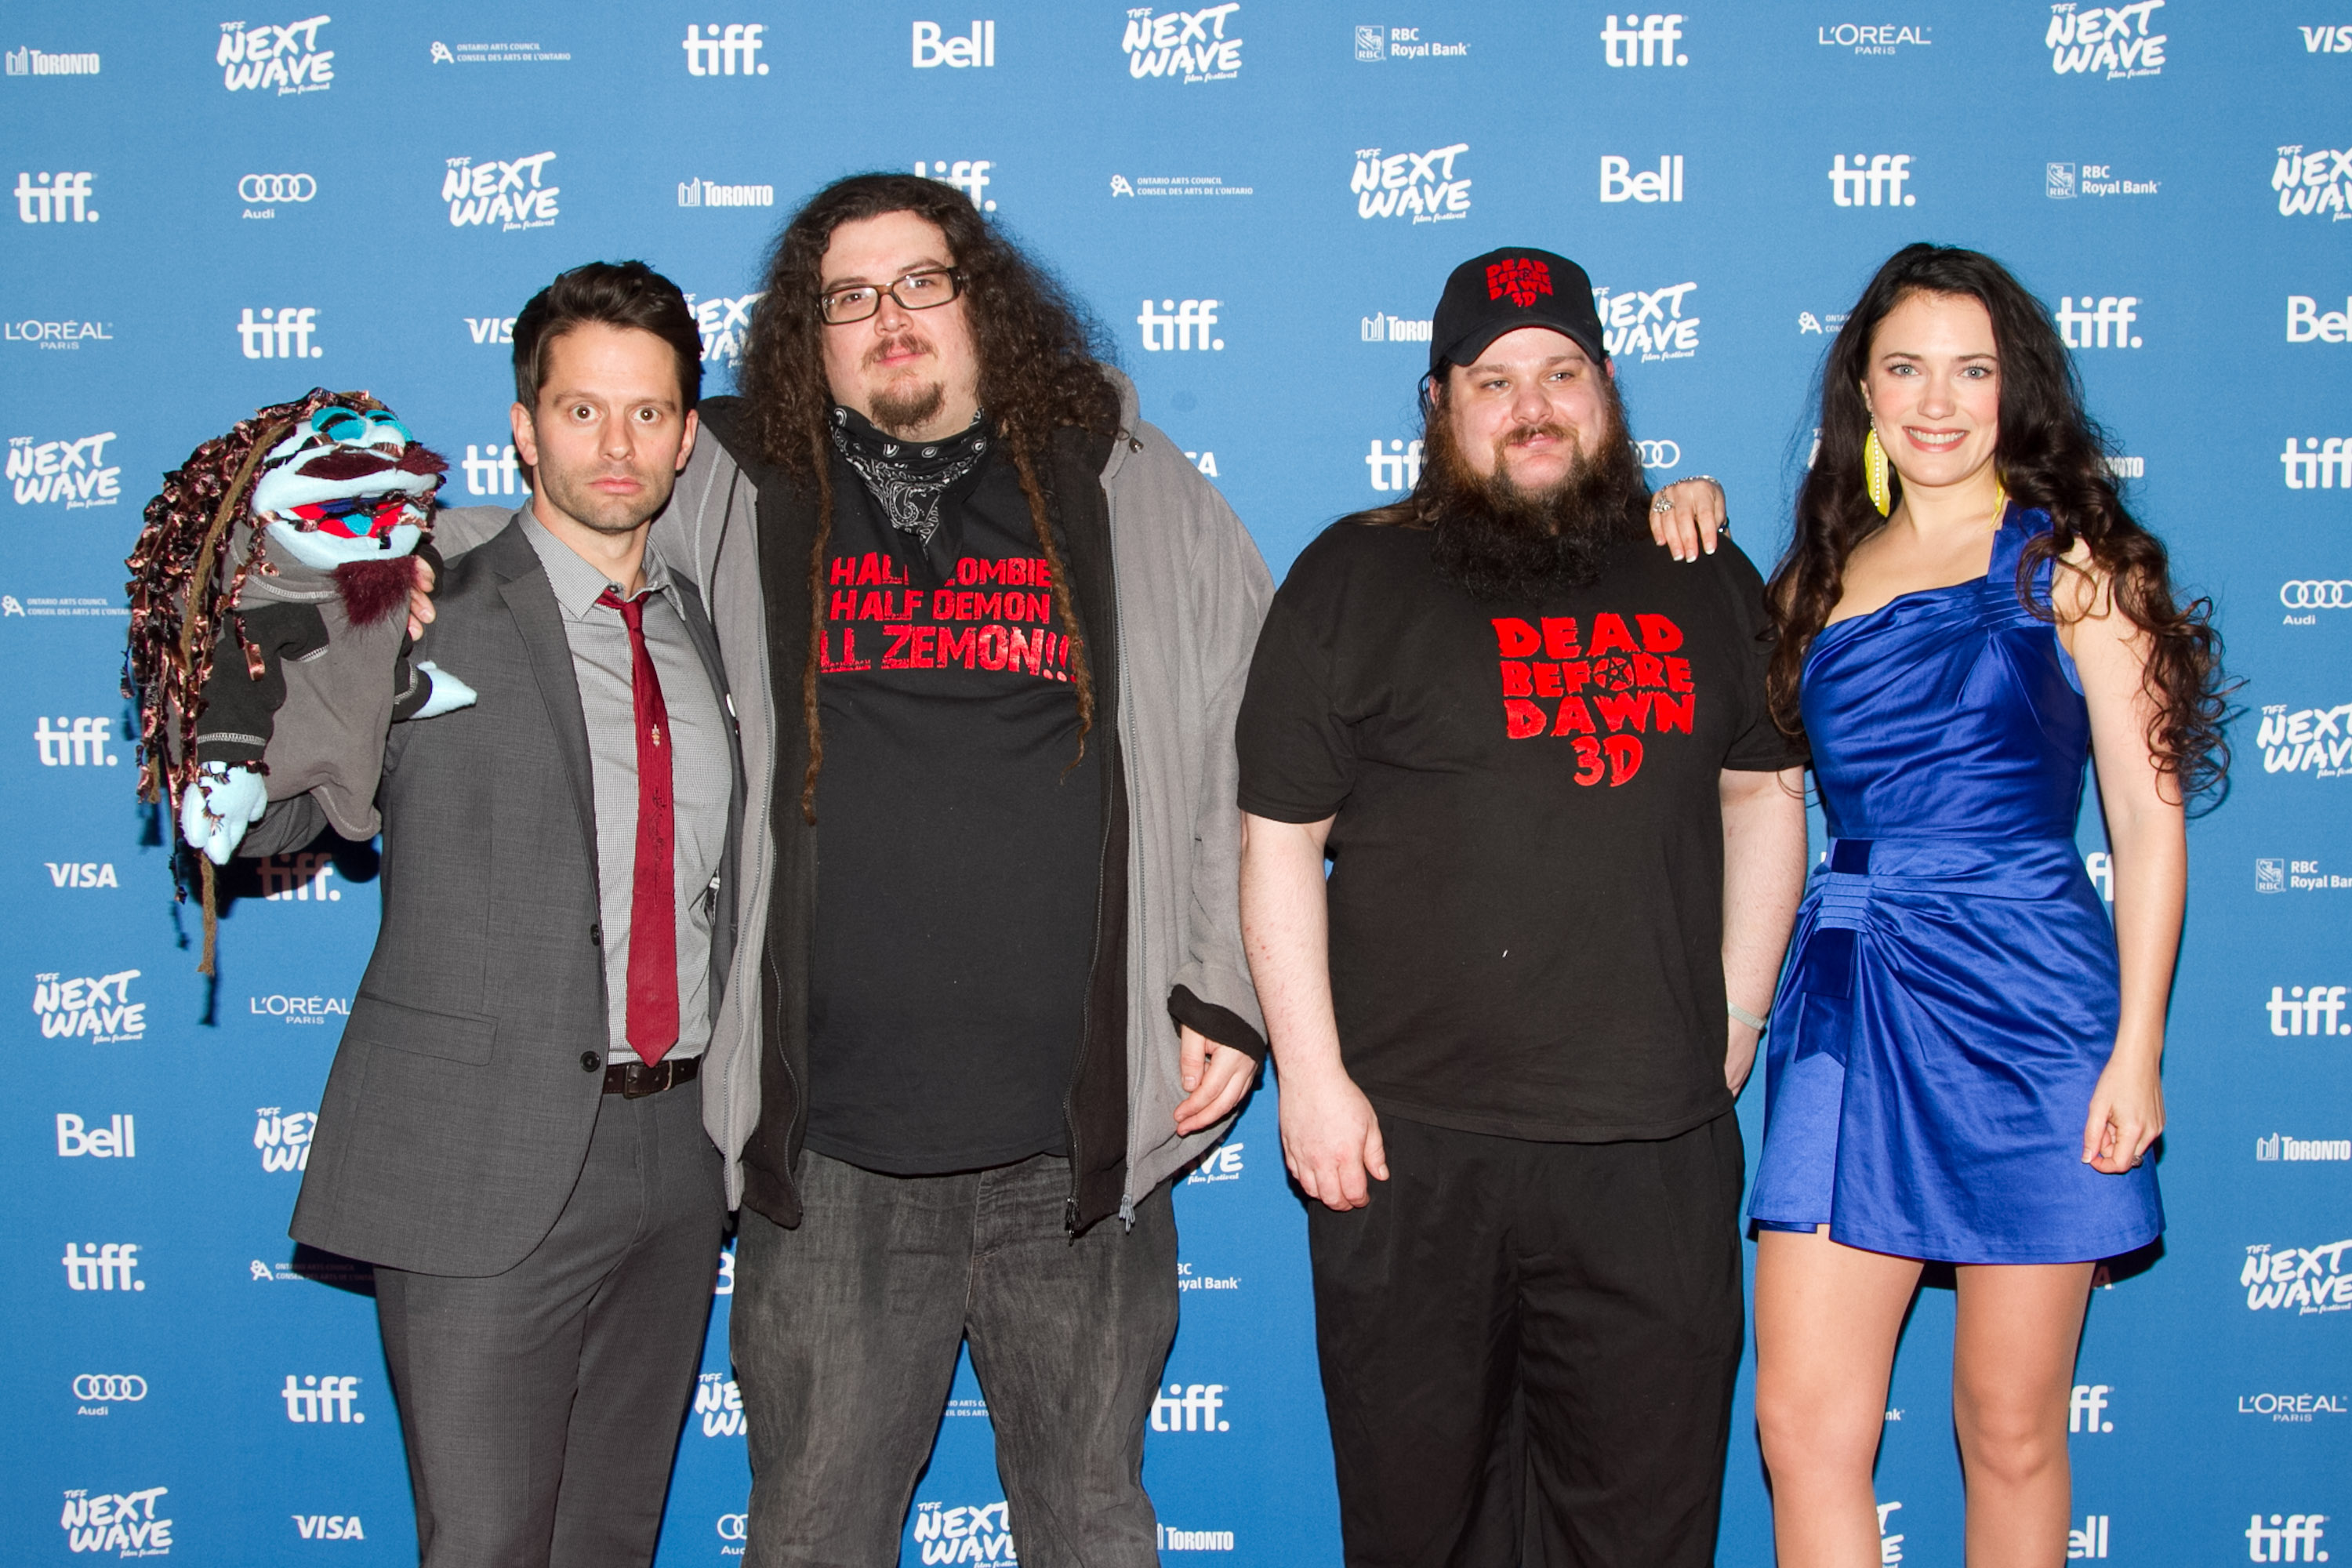 Left to Right, Tim Doiron (Actor/Writer) with Hippie Zemons Kent Churly and Kevin Jennings and April Mullen (Director/Actor) at the North American Premiere of Dead Before Dawn 3D.  TIFF Next Wave Film Festival.  Photo by: Sarjoun Faour, WireImage/Getty for TIFF